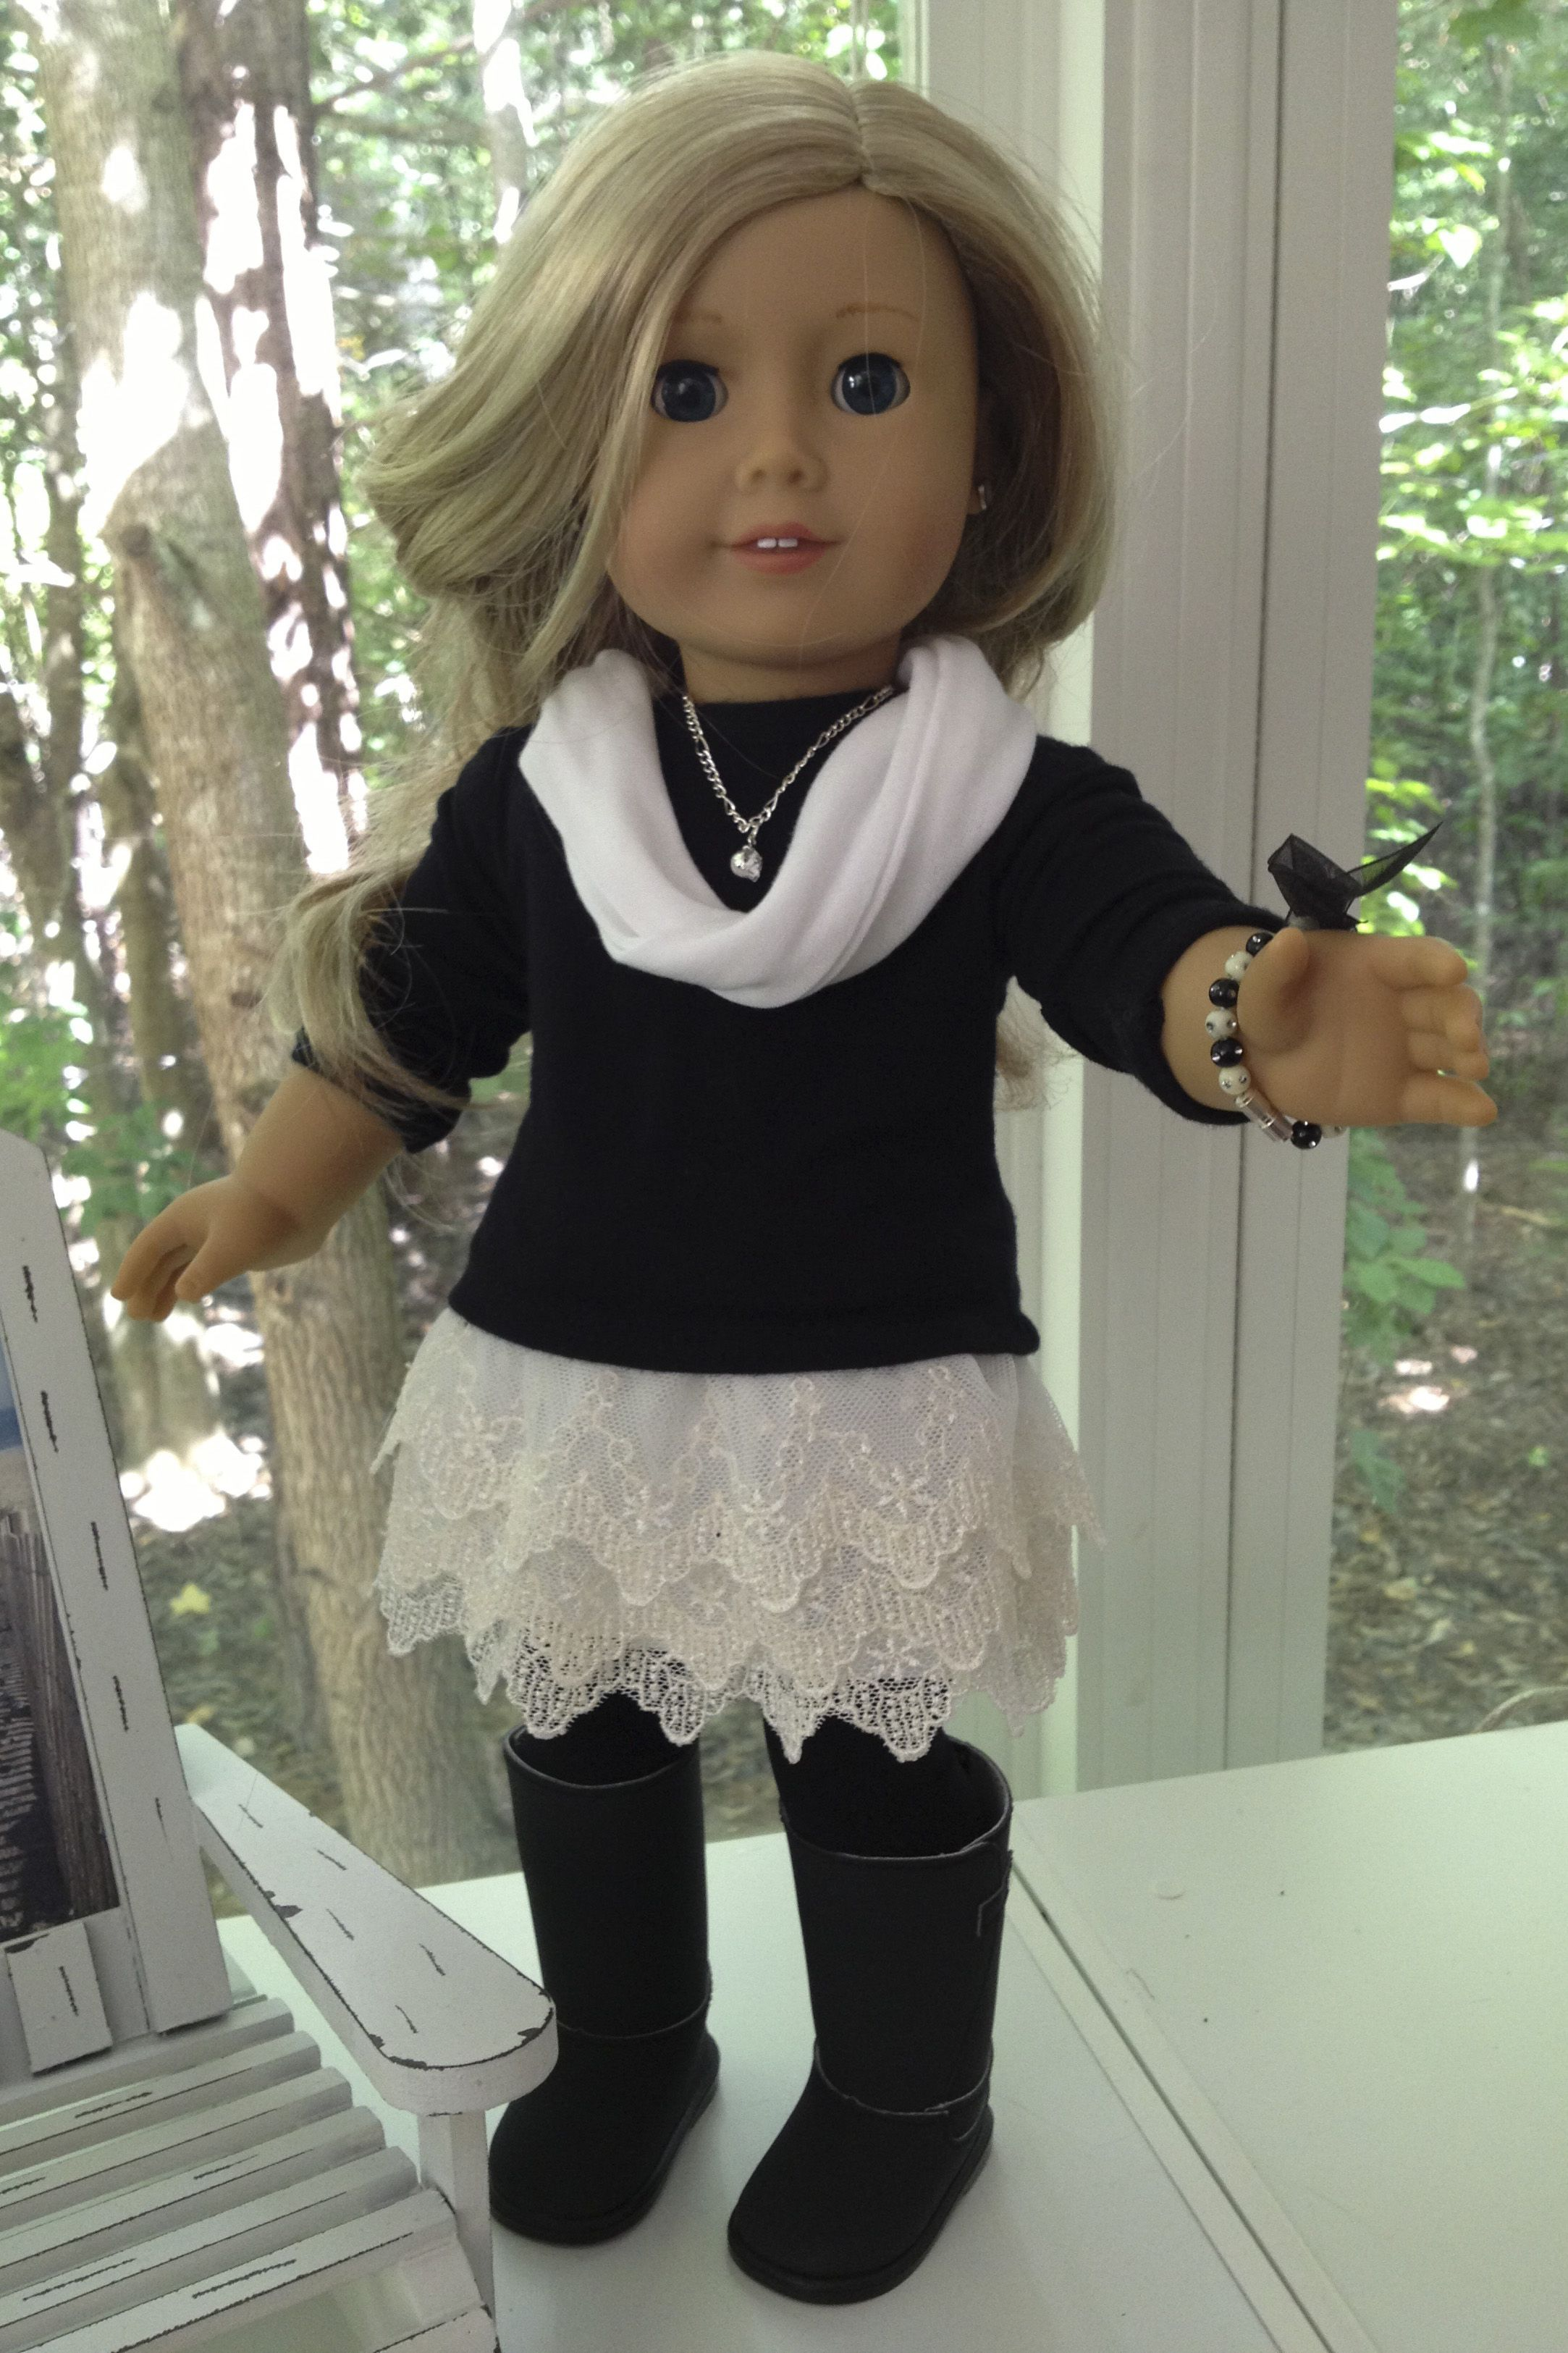 american girl clark doll with book ag doll diy crafts american girl american doll clothes. Black Bedroom Furniture Sets. Home Design Ideas